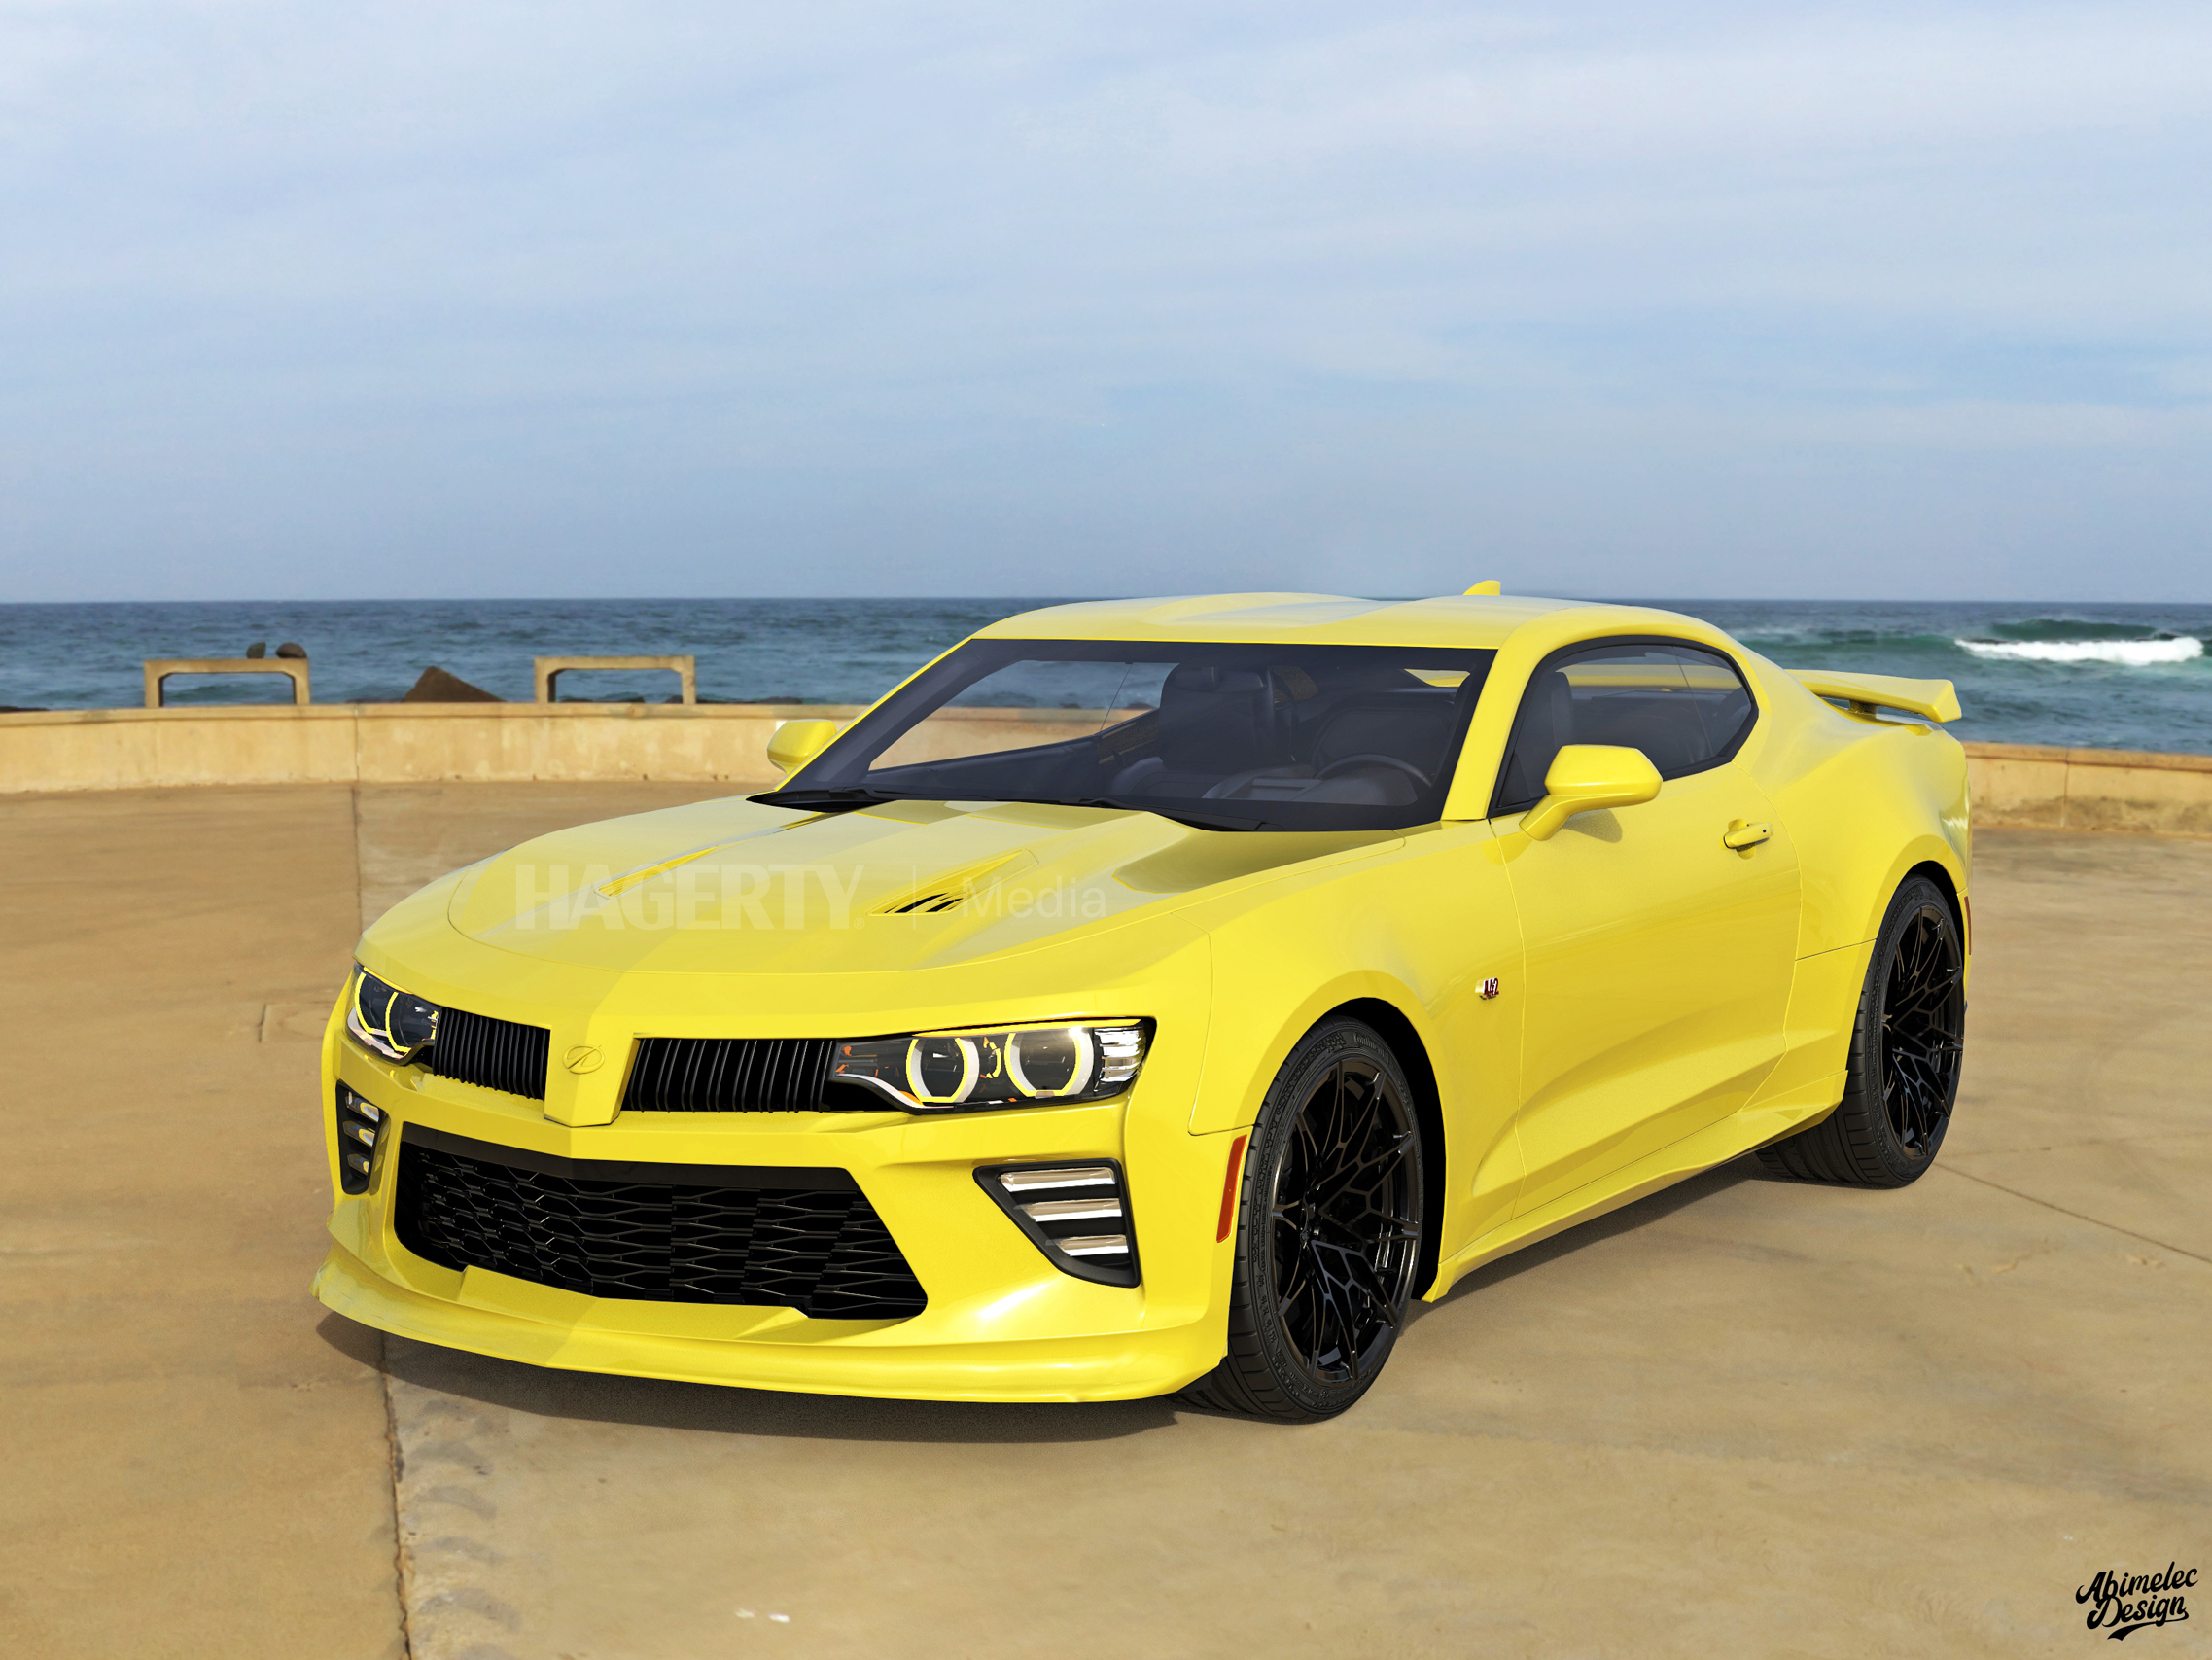 2021 Oldsmobile Cutlass Supreme what if graphic render yellow